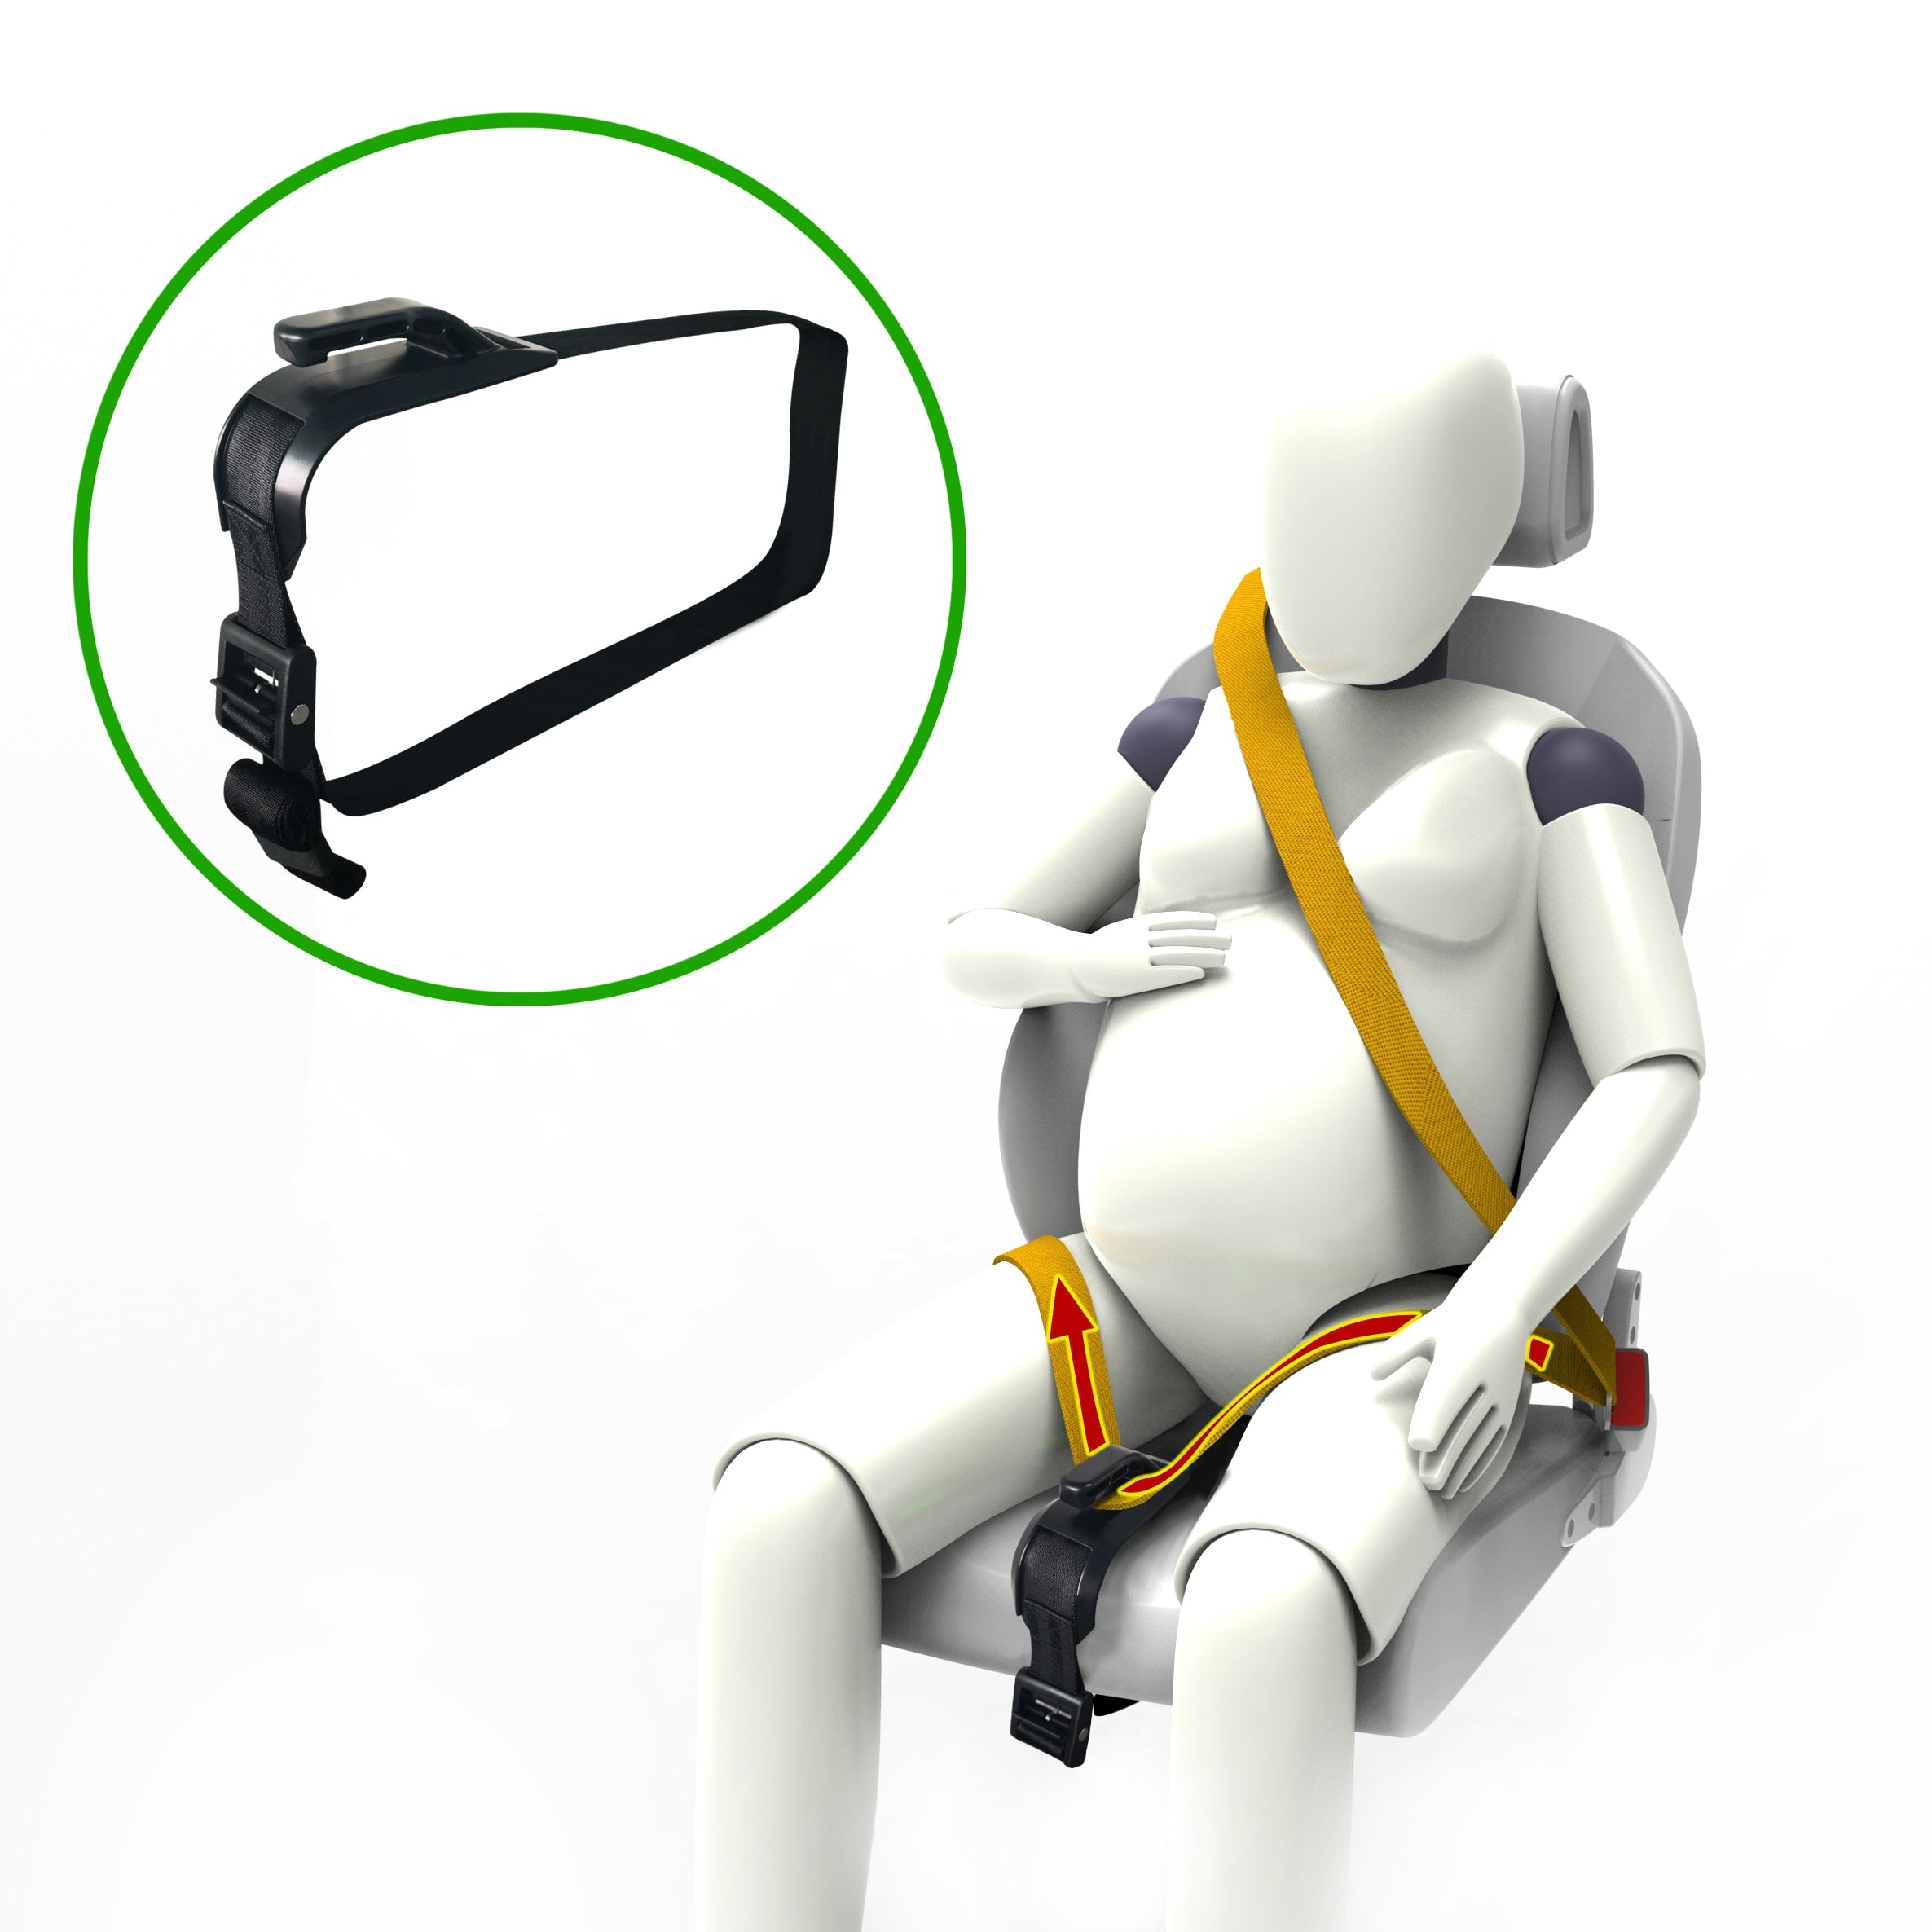 SEATBELT ADJUSTER FOR PREGNANCY